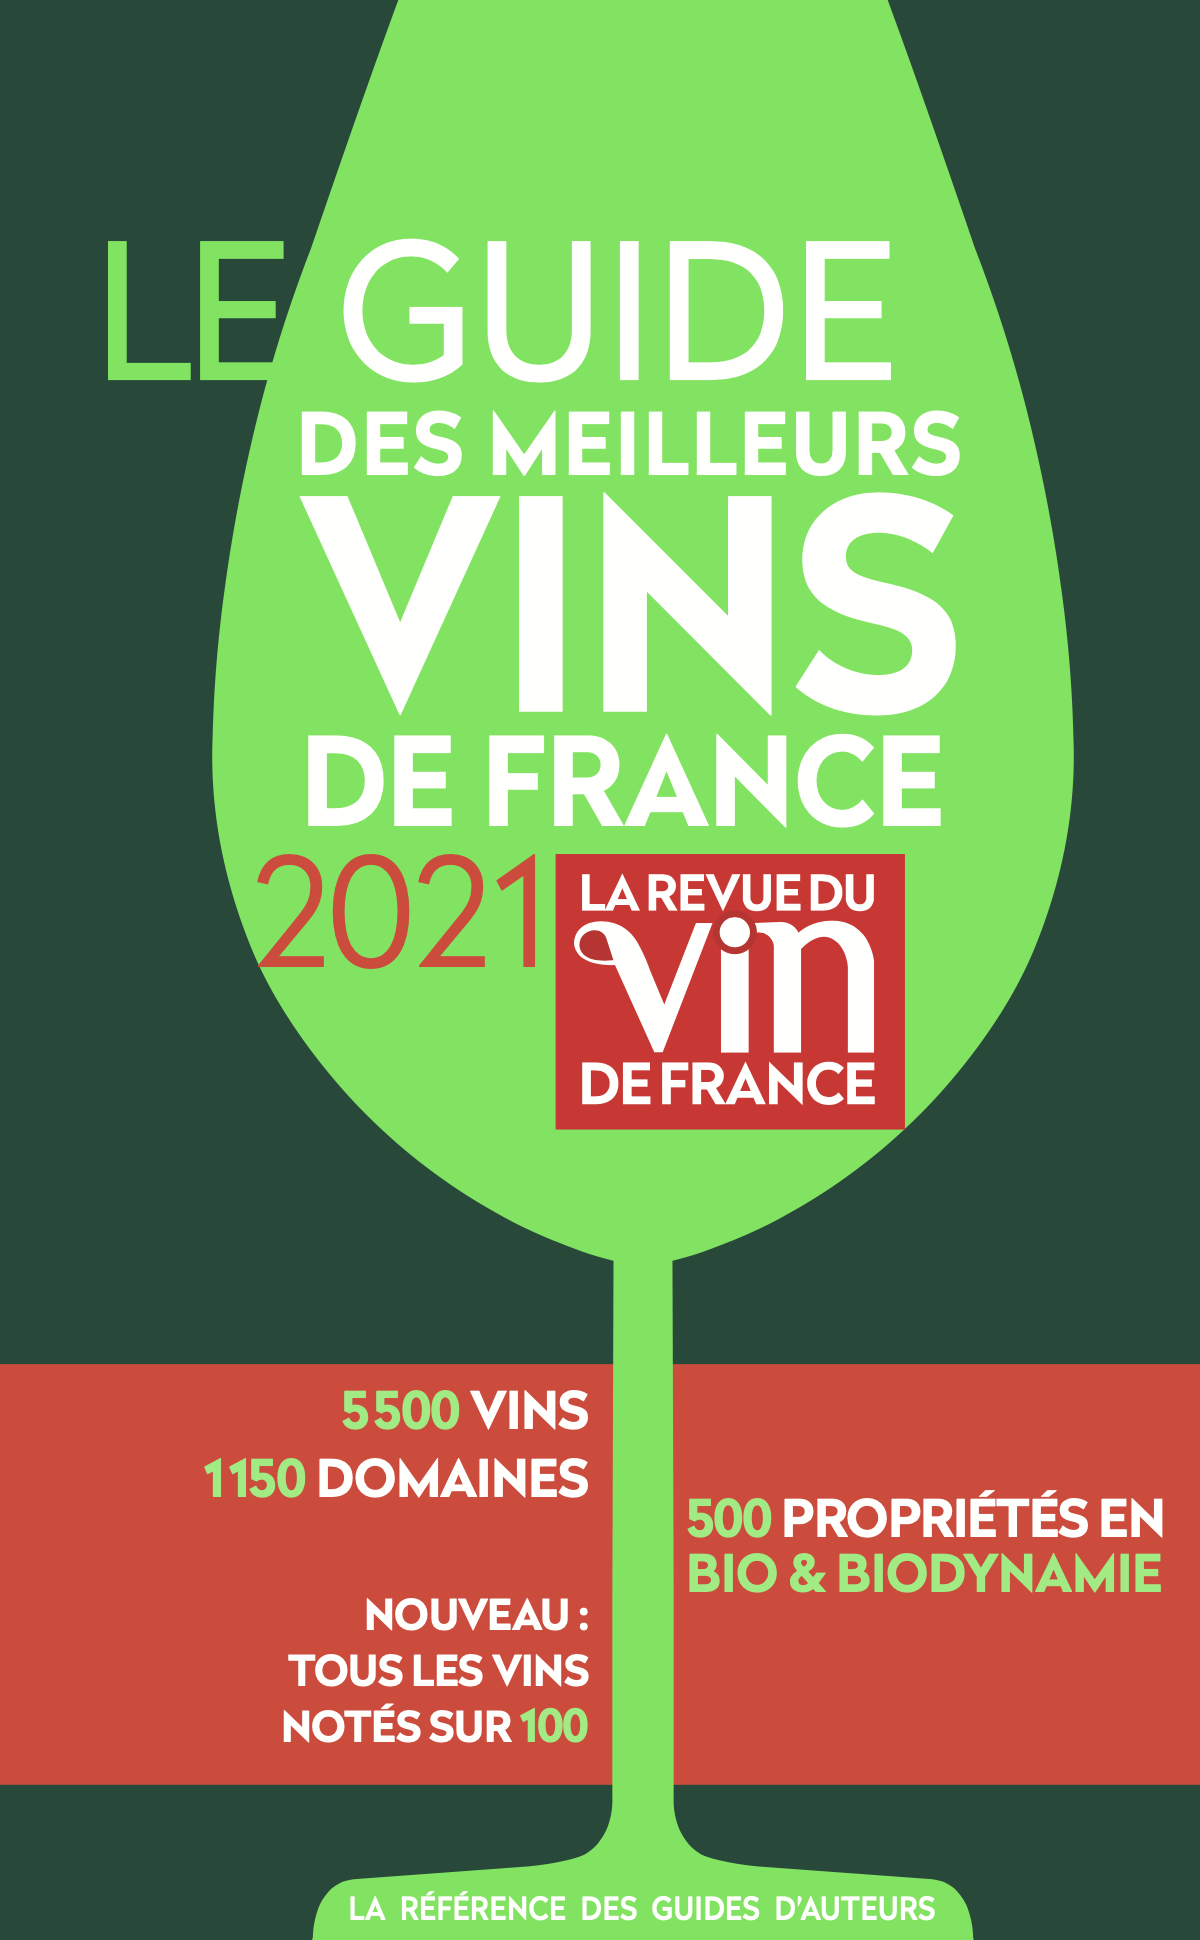 GREEN GUIDE OF THE FRENCH WINE REVIEW (RVF) 2021